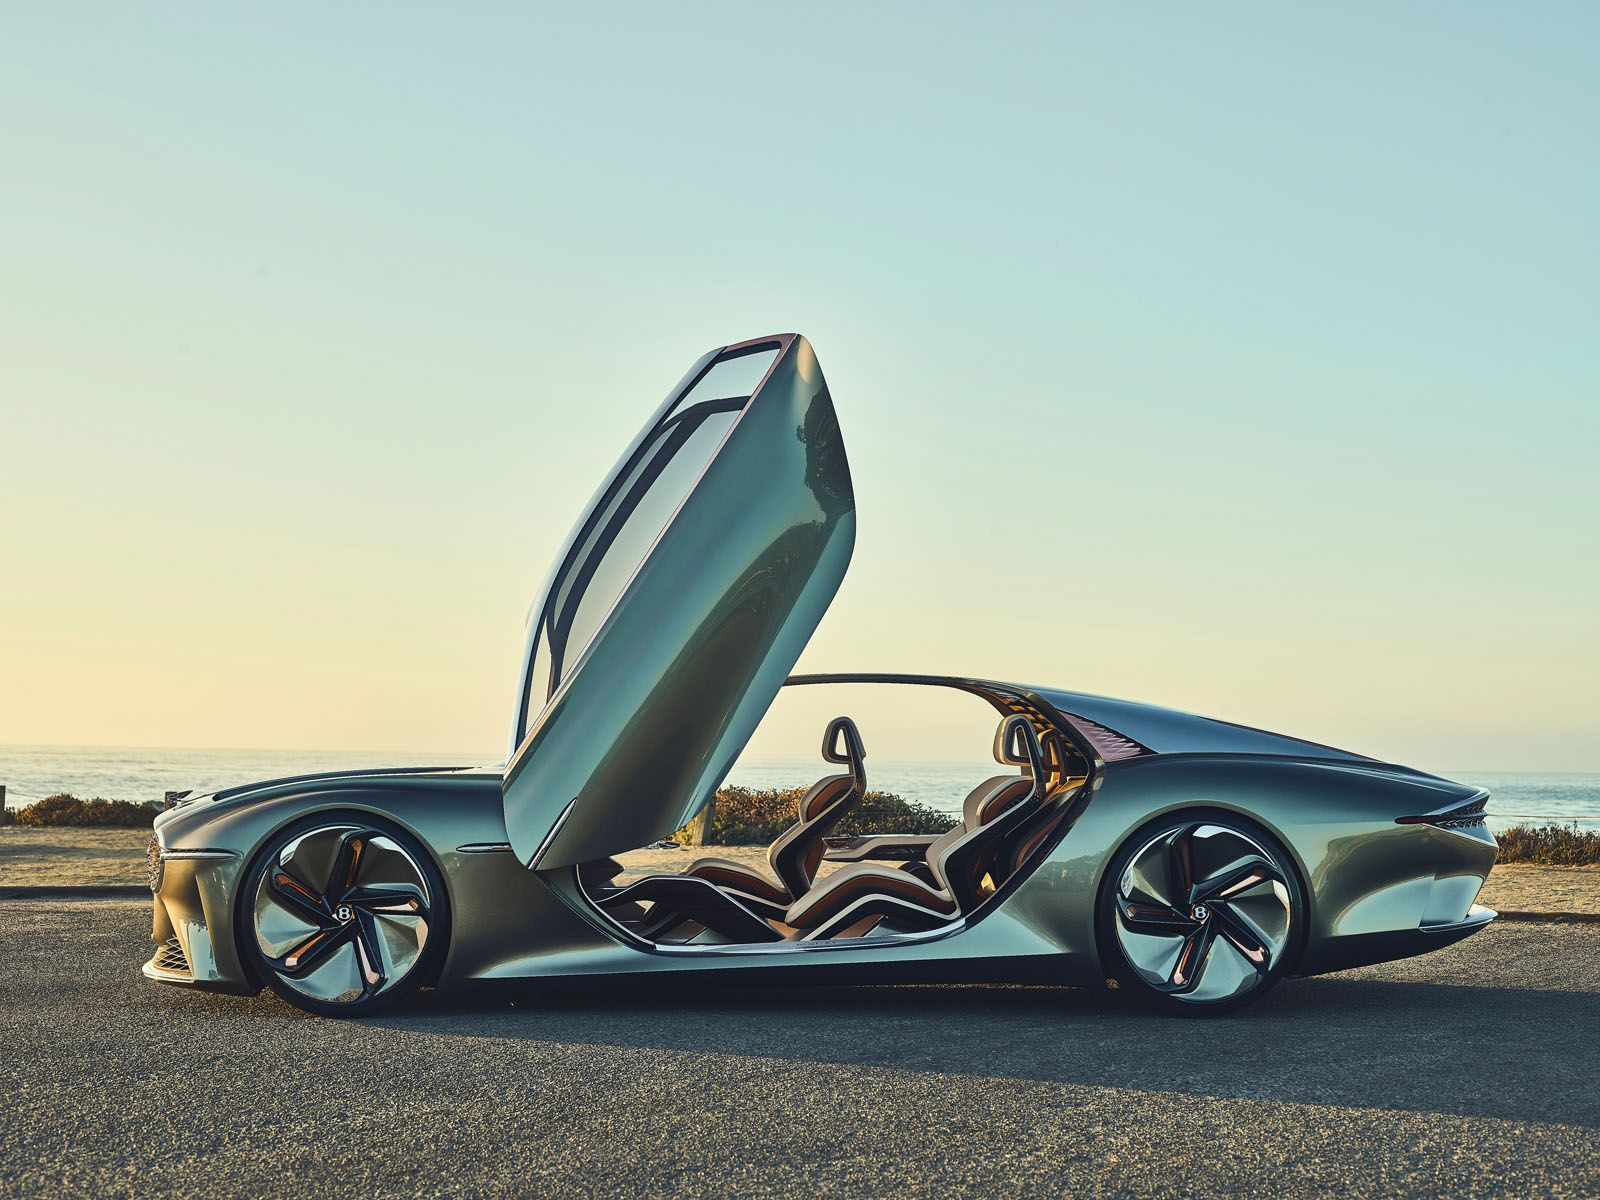 Bentley Enters Its Next Century Of Grand Touring With An All-Electric And Sustainable Vision For Its Cars